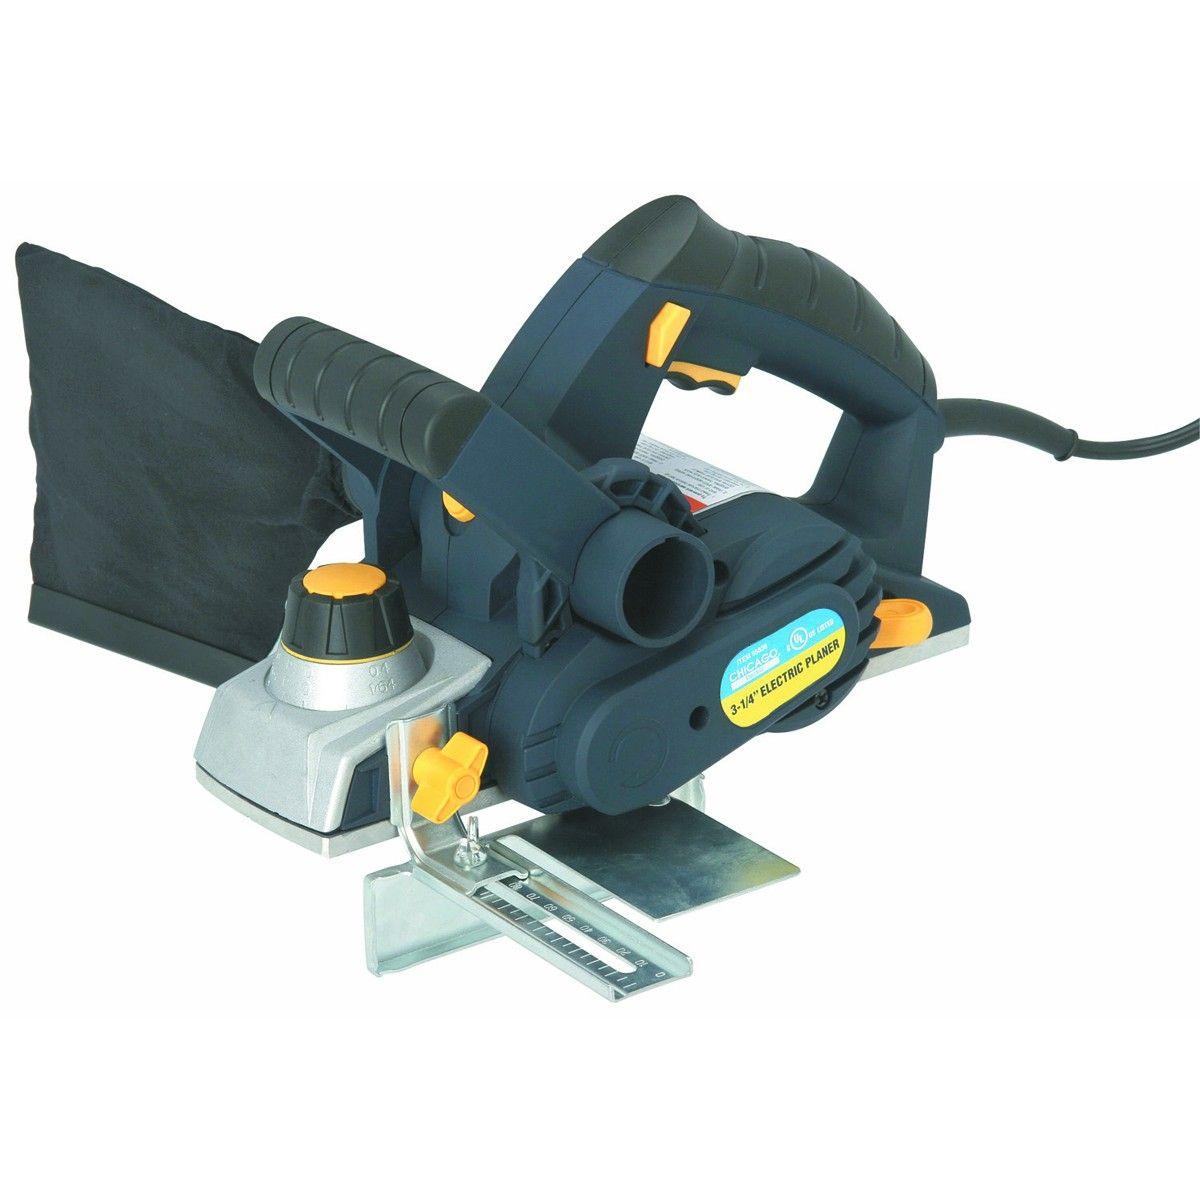 3 1 4 In 7 5 Amp Heavy Duty Electric Planer With Dust Bag Electric Planer Woodworking Projects That Sell Power Tools For Sale